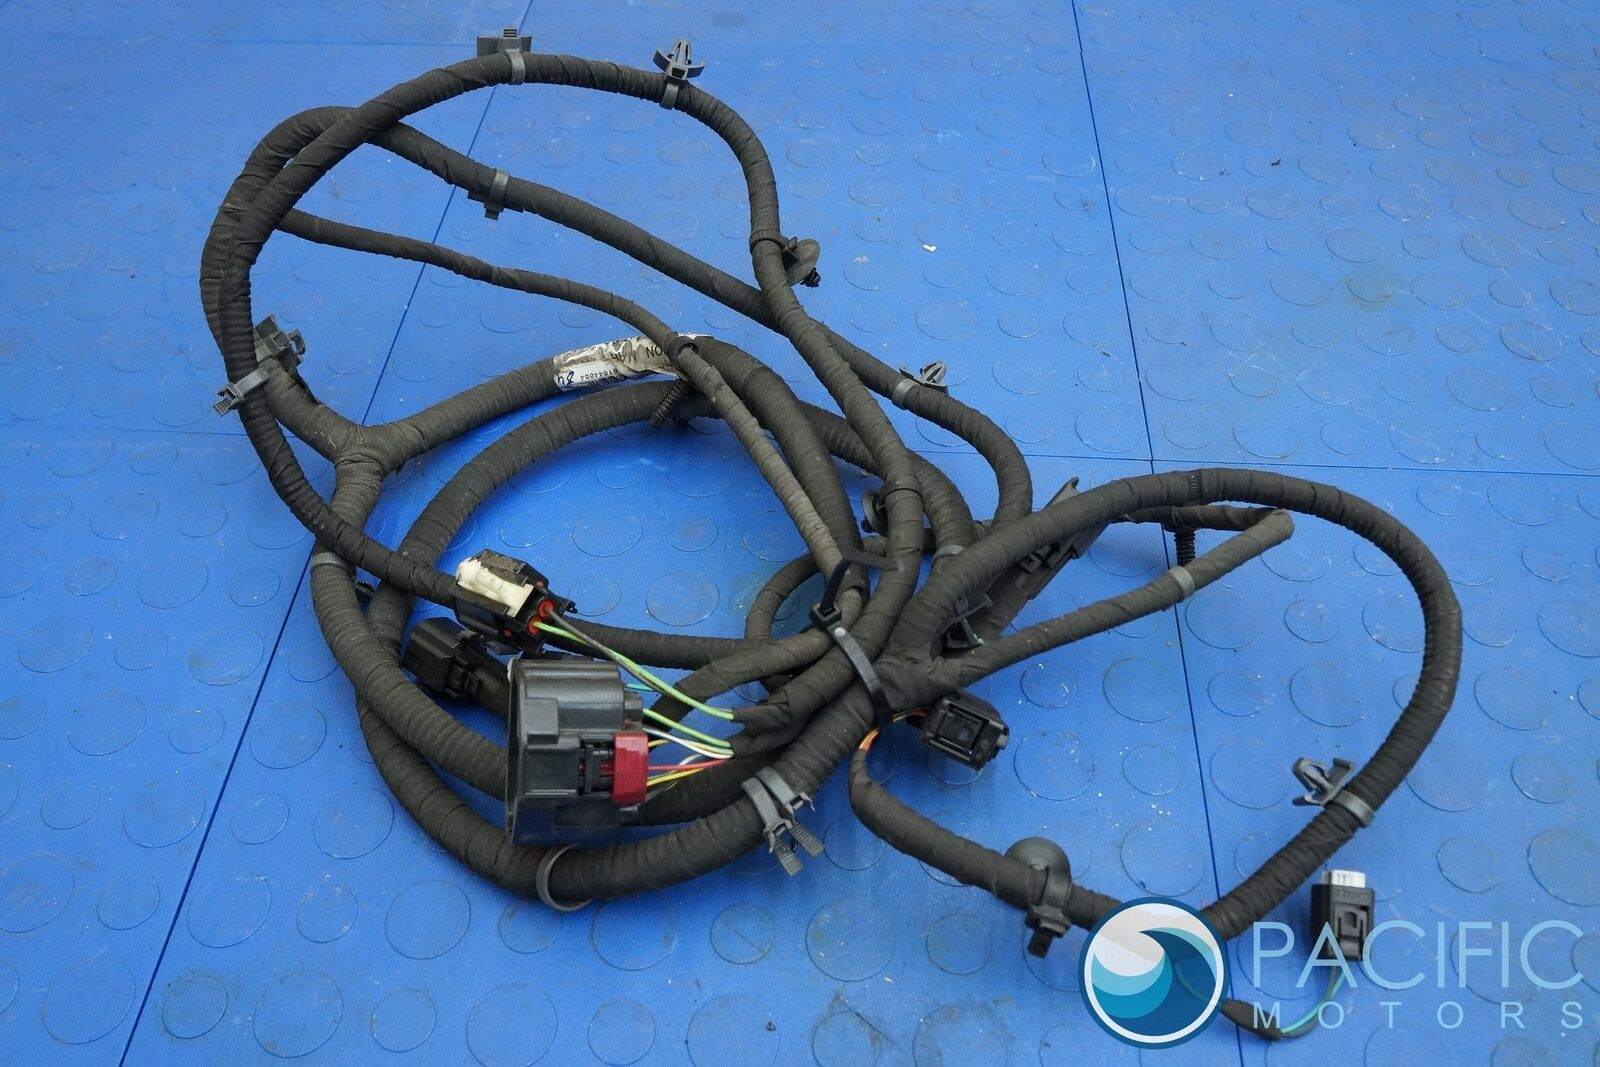 Rear Axle Wiring Wire Harness Manual 6G33-7E443-AD Aston Martin V8 Vantage  2007 – Pacific Motors